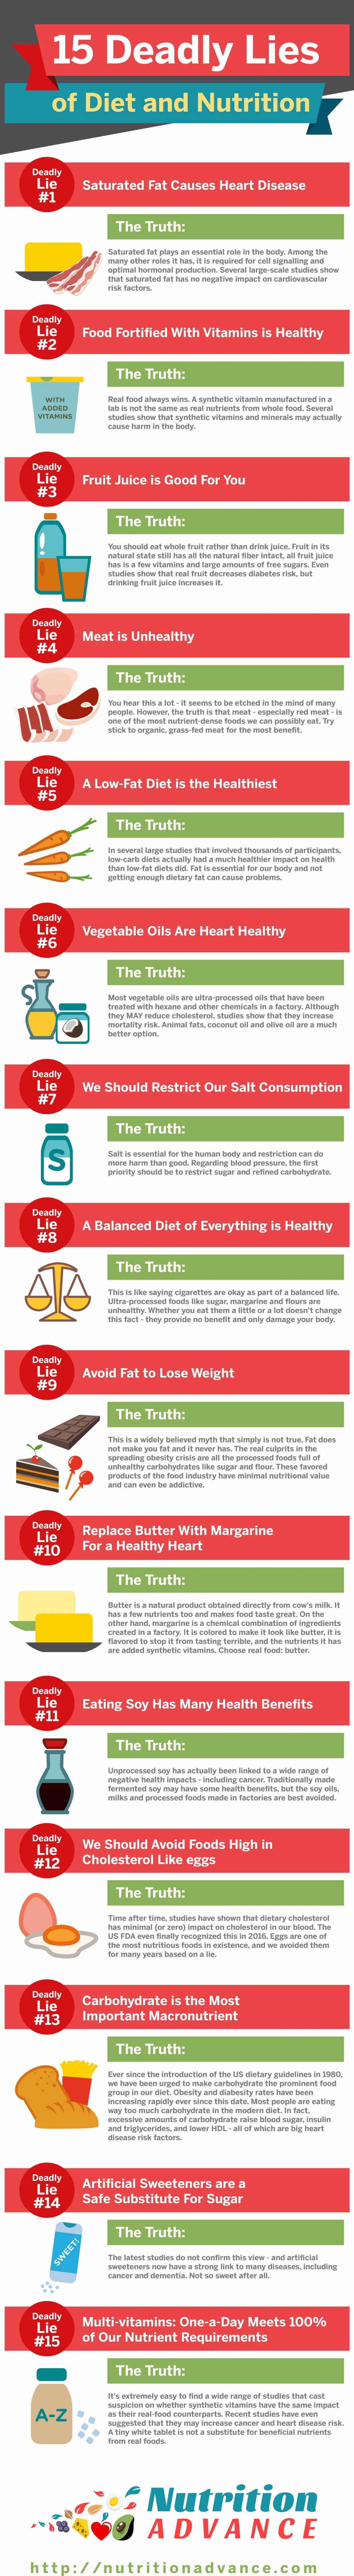 15 Diet And Nutrition Myths Busted!